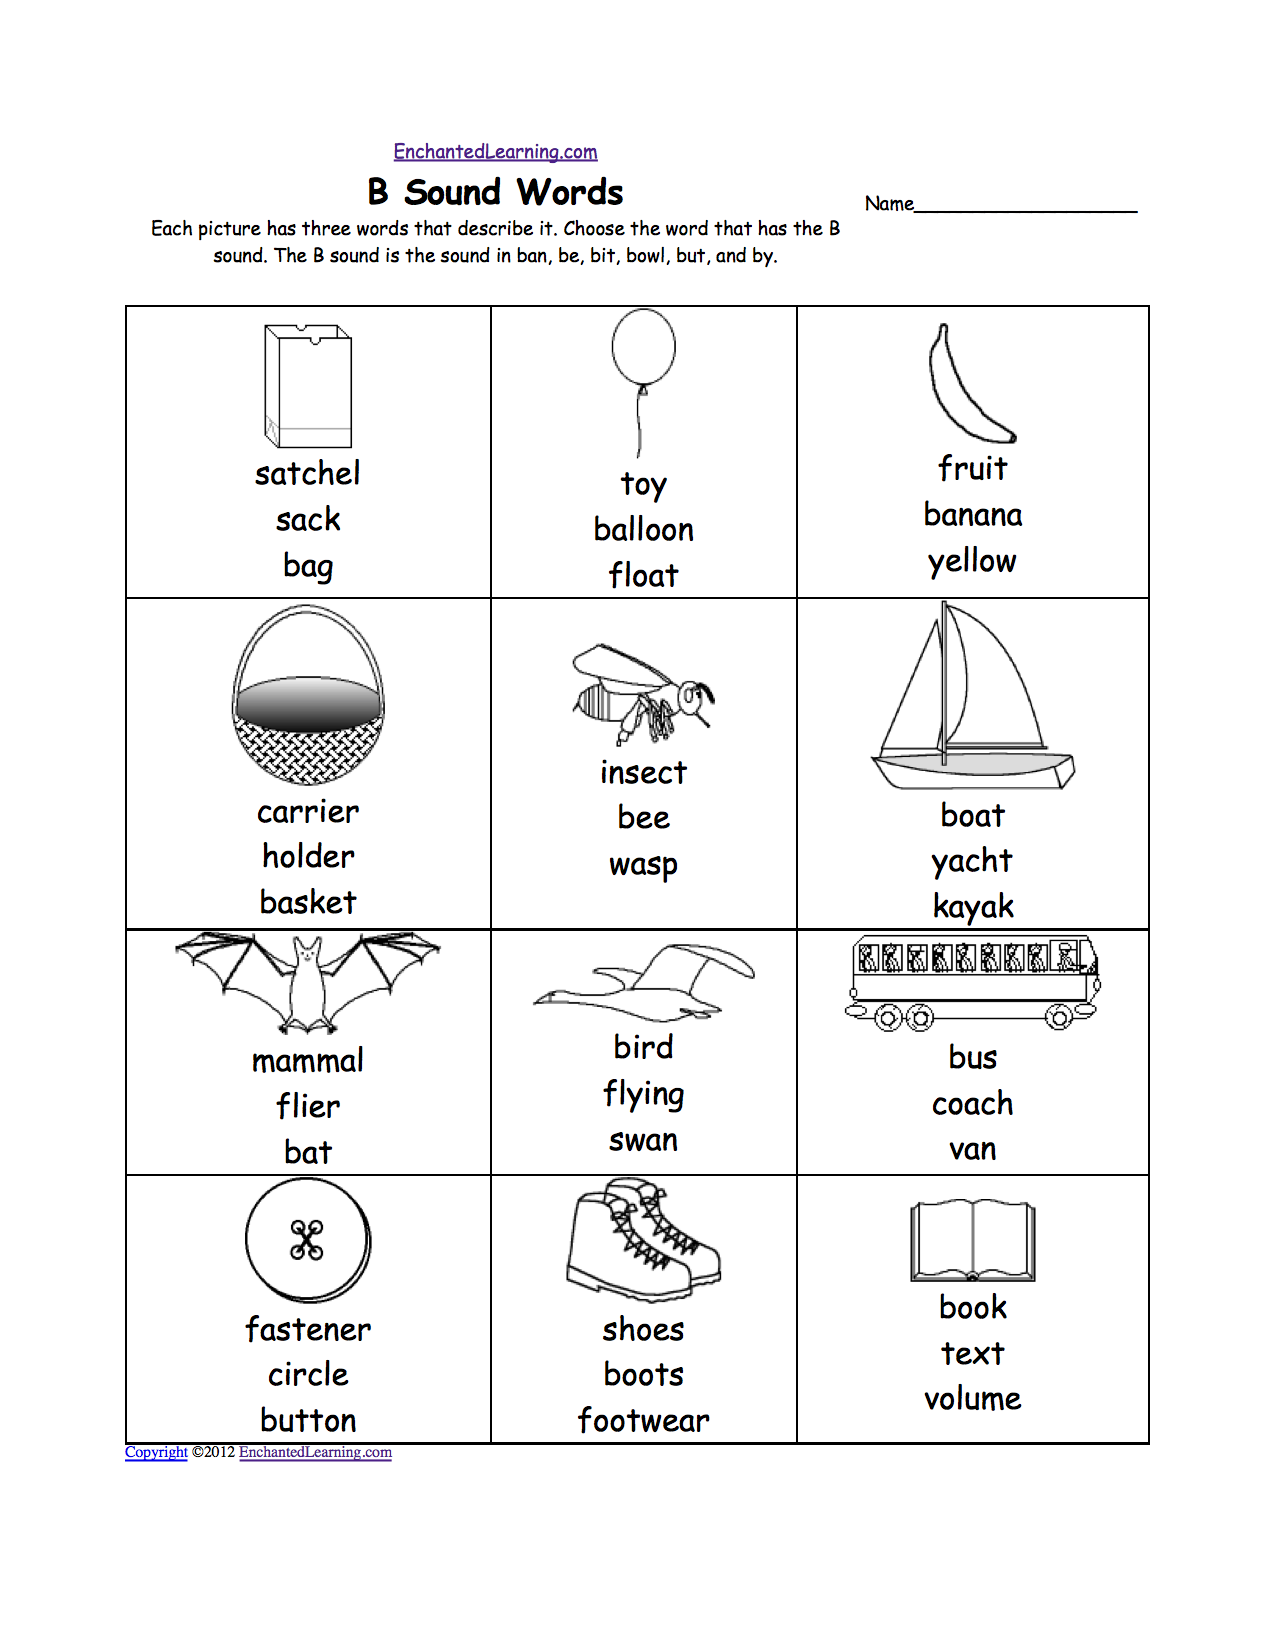 Aldiablosus  Inspiring Phonics Worksheets Multiple Choice Worksheets To Print  With Licious Quotbquot Sound Phonics Worksheet Multiple Choice Each Picture Has Three Words That Describe It Choose The Word That Has A Quotbquot Sound The Quotbquot Sound Is The Sound  With Amusing Circumference Of Circles Worksheet Also Citing Sources Worksheet In Addition Math Grade  Worksheets And Osha Form A Worksheet As Well As Us Army Promotion Point Worksheet Additionally Ending Sounds Worksheets Kindergarten From Enchantedlearningcom With Aldiablosus  Licious Phonics Worksheets Multiple Choice Worksheets To Print  With Amusing Quotbquot Sound Phonics Worksheet Multiple Choice Each Picture Has Three Words That Describe It Choose The Word That Has A Quotbquot Sound The Quotbquot Sound Is The Sound  And Inspiring Circumference Of Circles Worksheet Also Citing Sources Worksheet In Addition Math Grade  Worksheets From Enchantedlearningcom